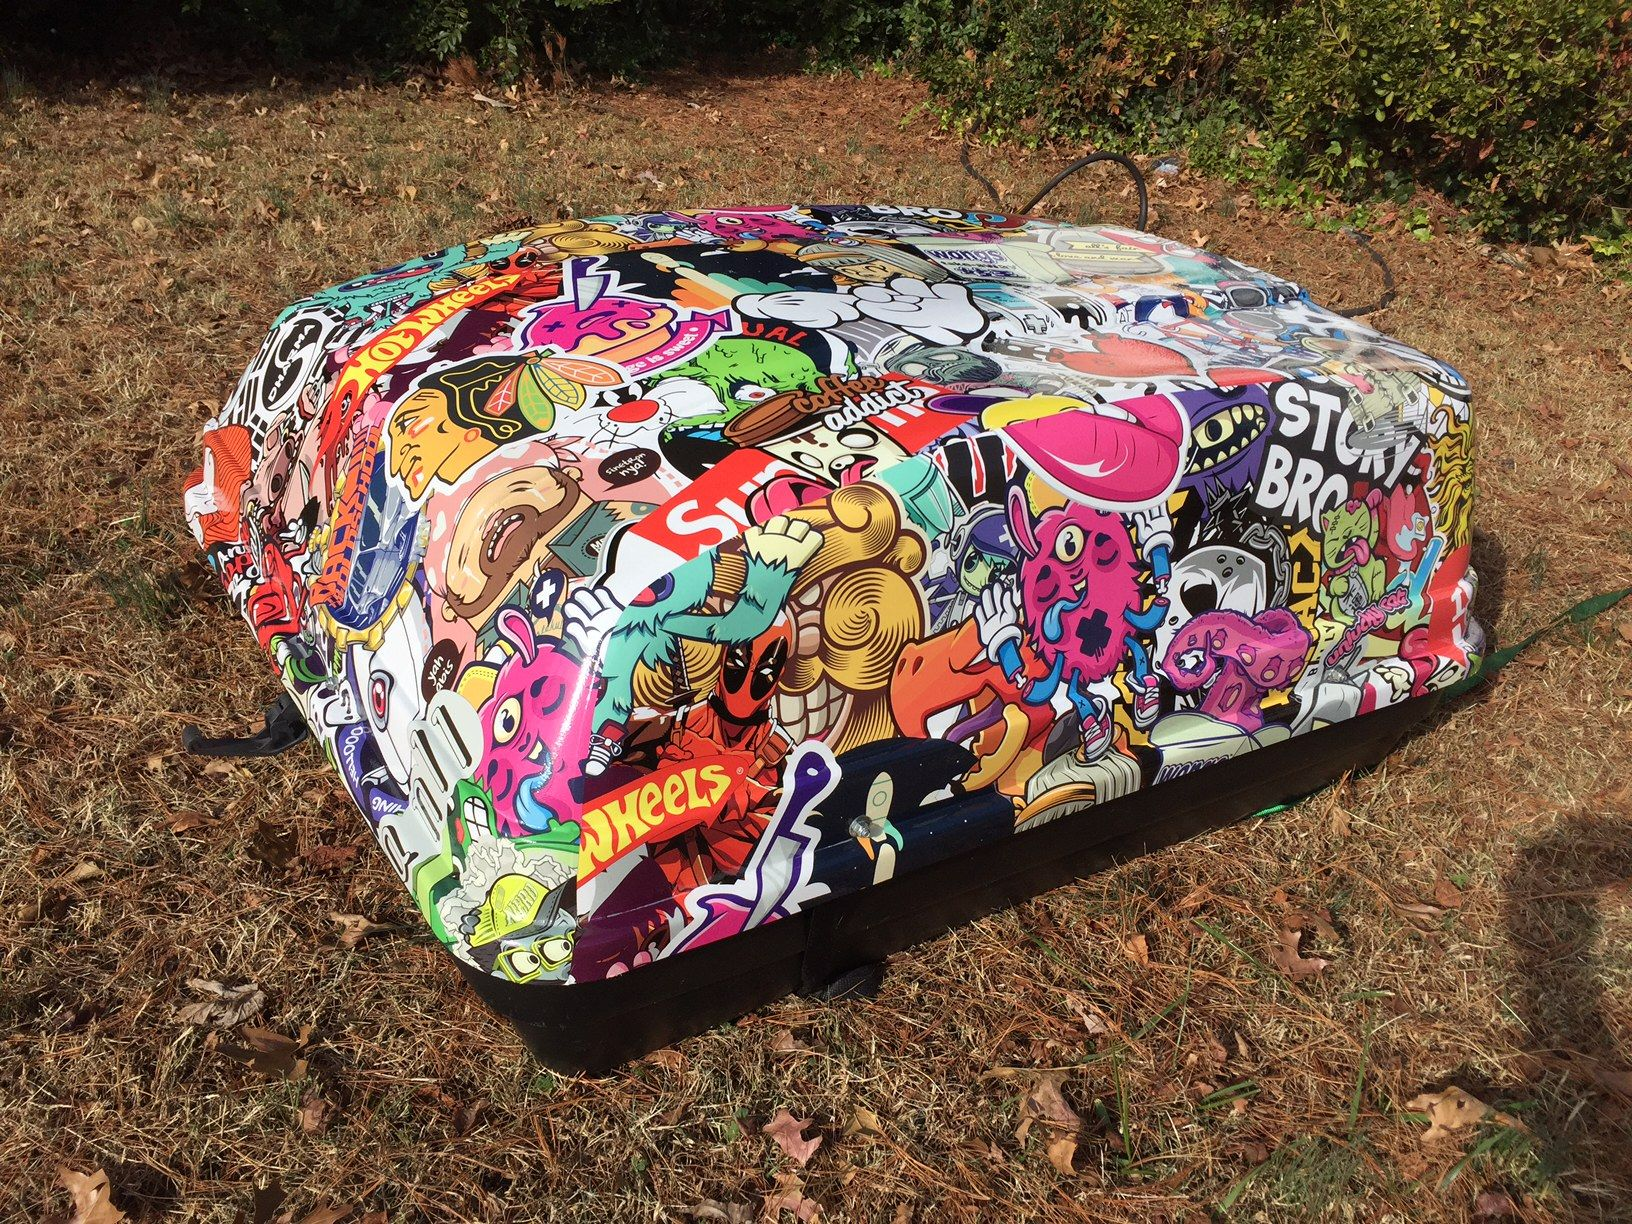 Custom sticker bomb car top luggage carrier wrap installed by six eight creative richmond va